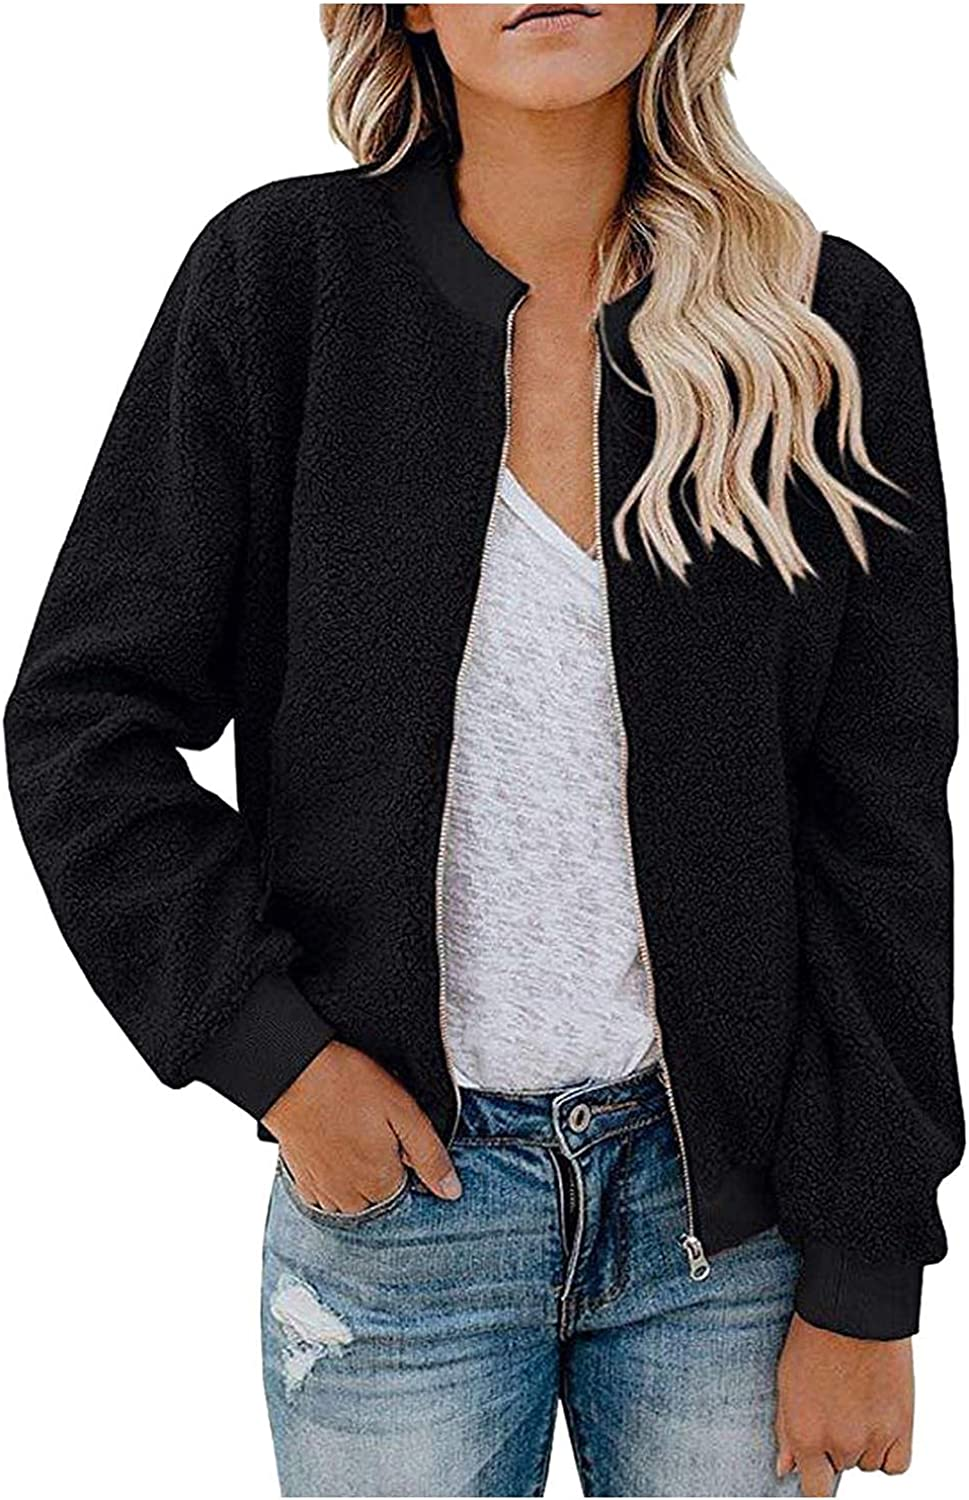 Women Casual British Plush Coat O-Neck Zipper Jacket Warm Solid Color Long Sleeve Top Fashion Blouse With Pockets